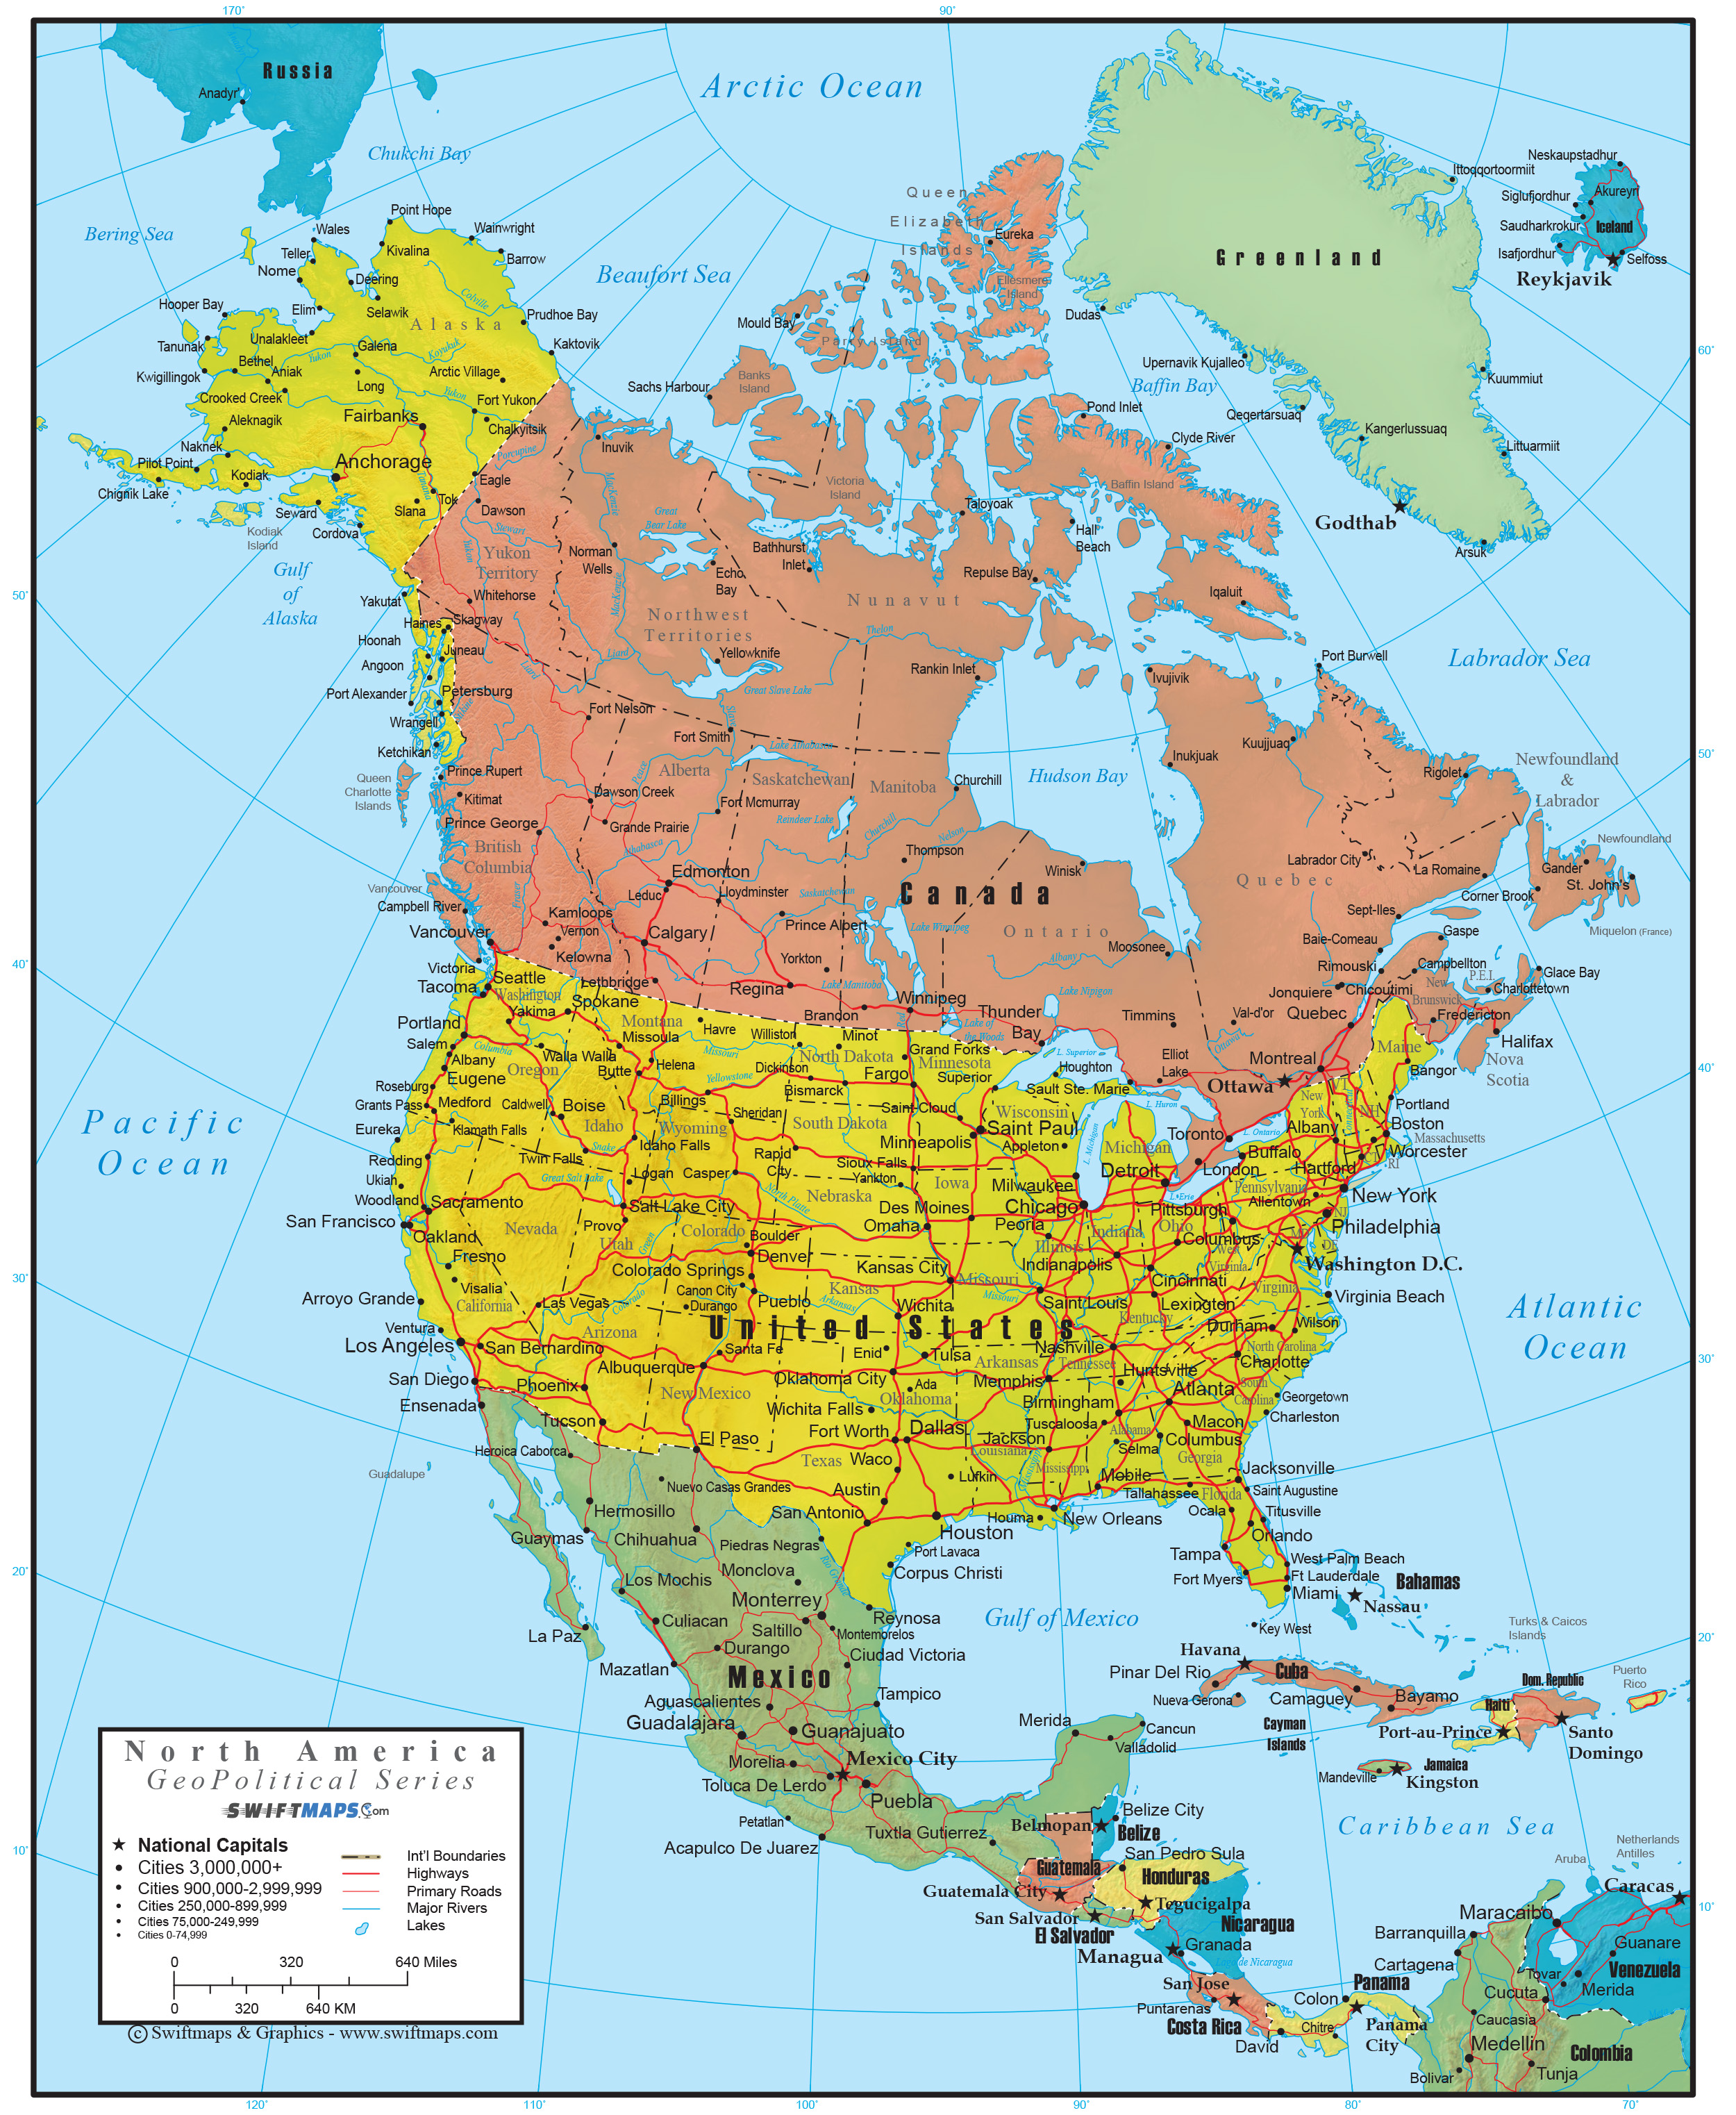 North America Wall Map Geopolitical Deluxe Edition